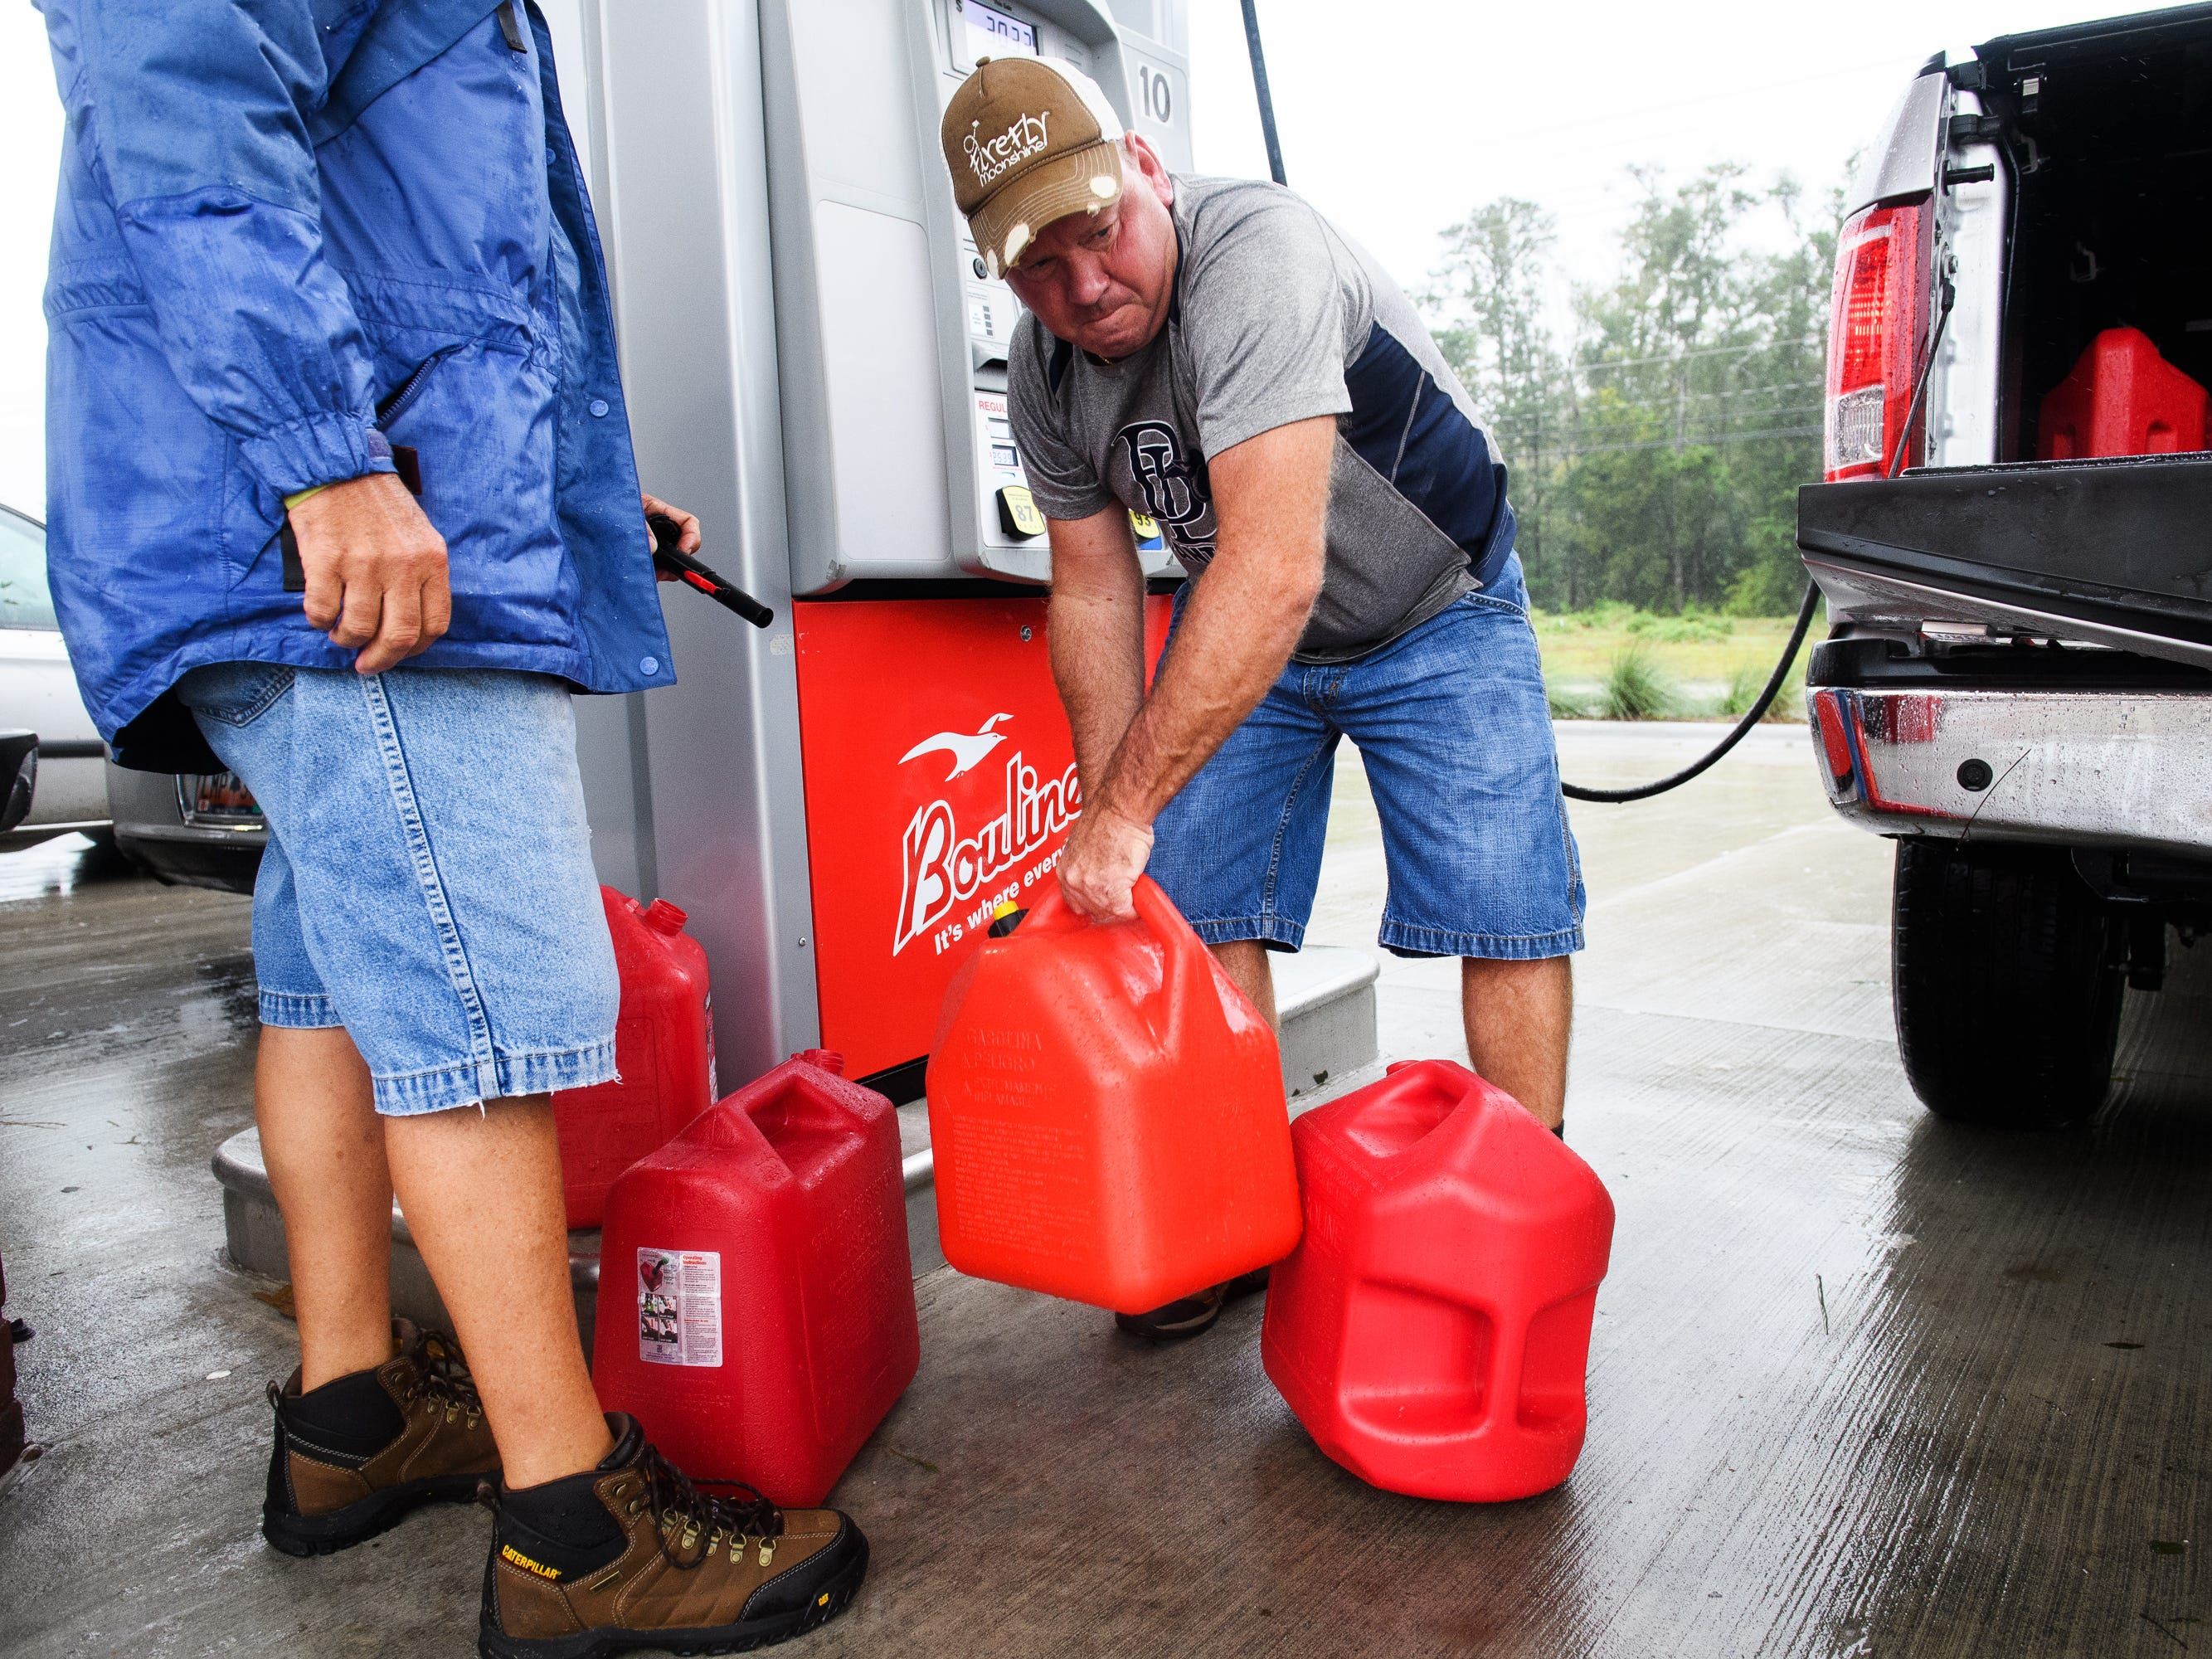 Keith Hanson loads one of his gas cans into his truck at Boulineau's Corner in North Myrtle Beach on Saturday, Sept. 15, 2018.